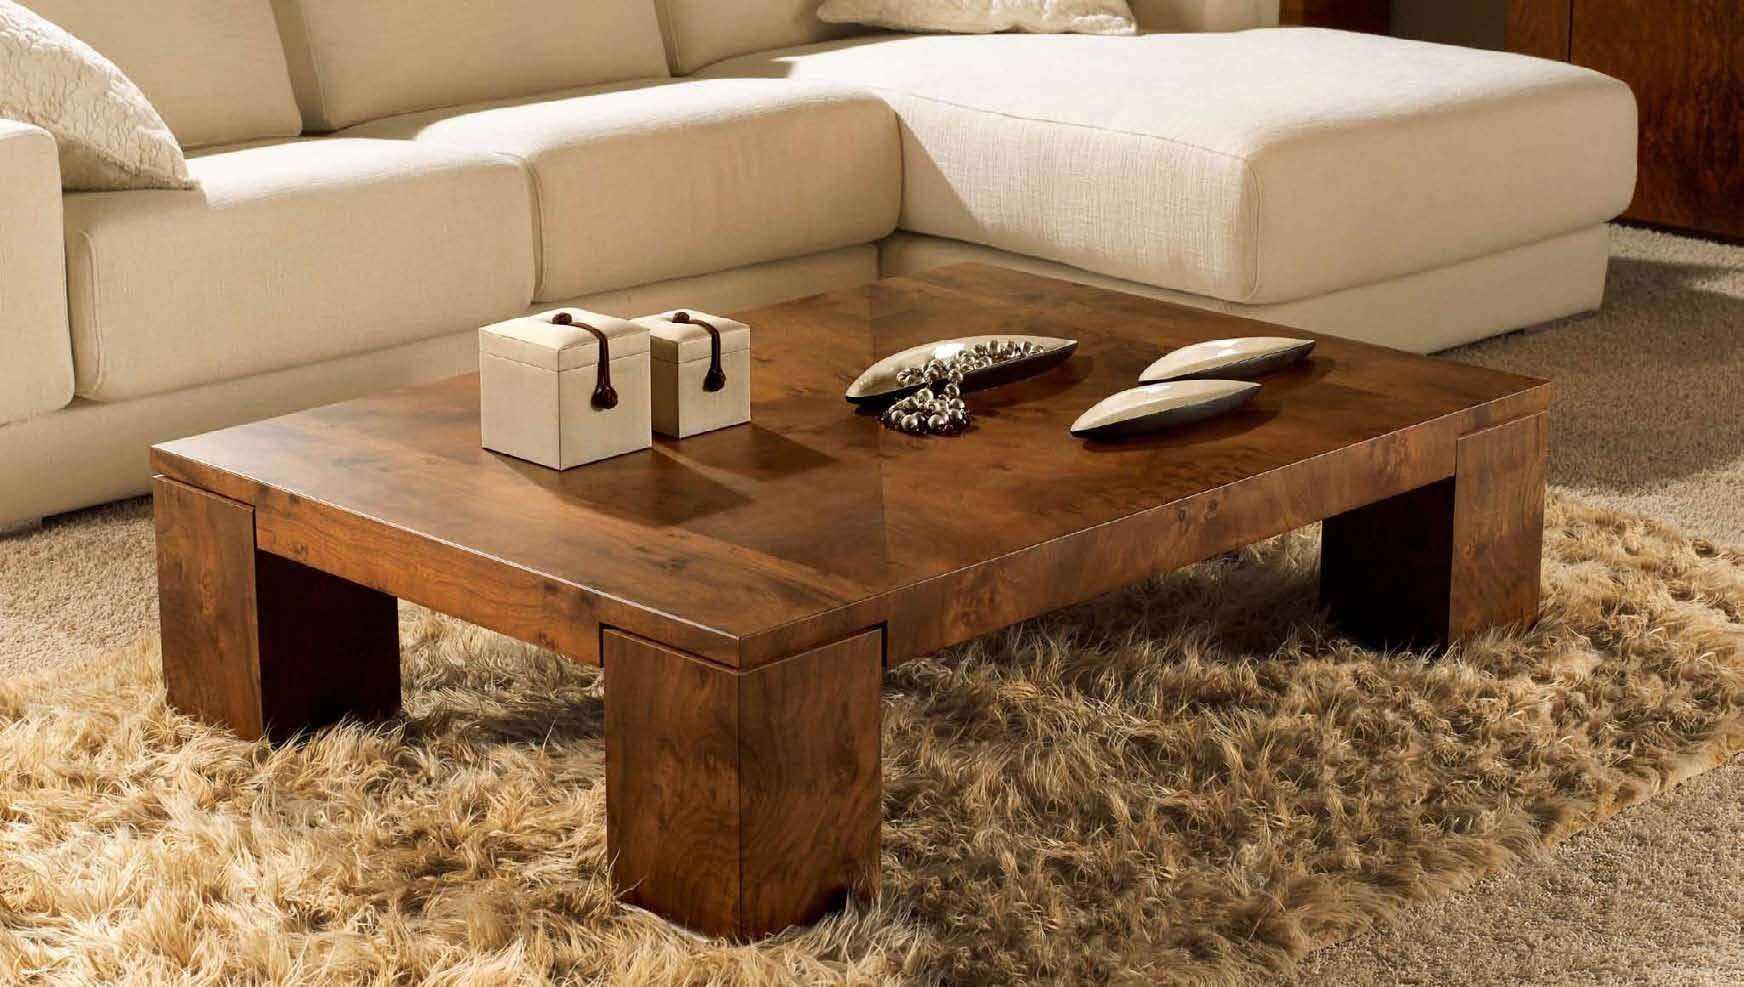 Most Up To Date Big Black Coffee Tables Within Big Floor Flower Vase Idea Big Vase Decor Set Coffee Tables For (View 16 of 20)